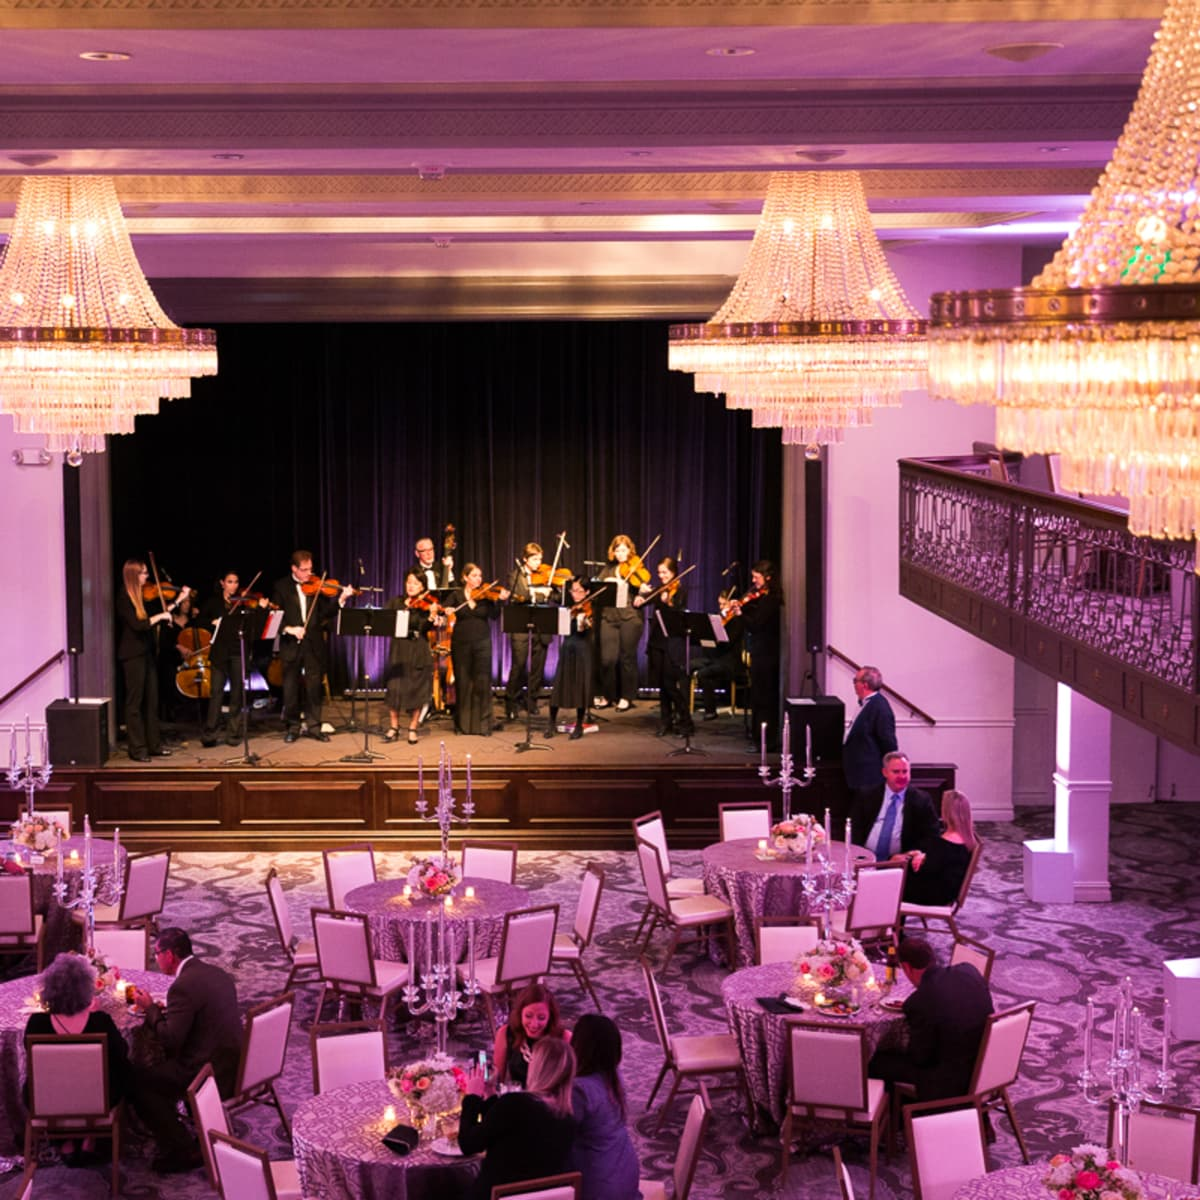 The Saint Anthony Hotel San Antonio Grand Reopening 2015 event hall orchestra